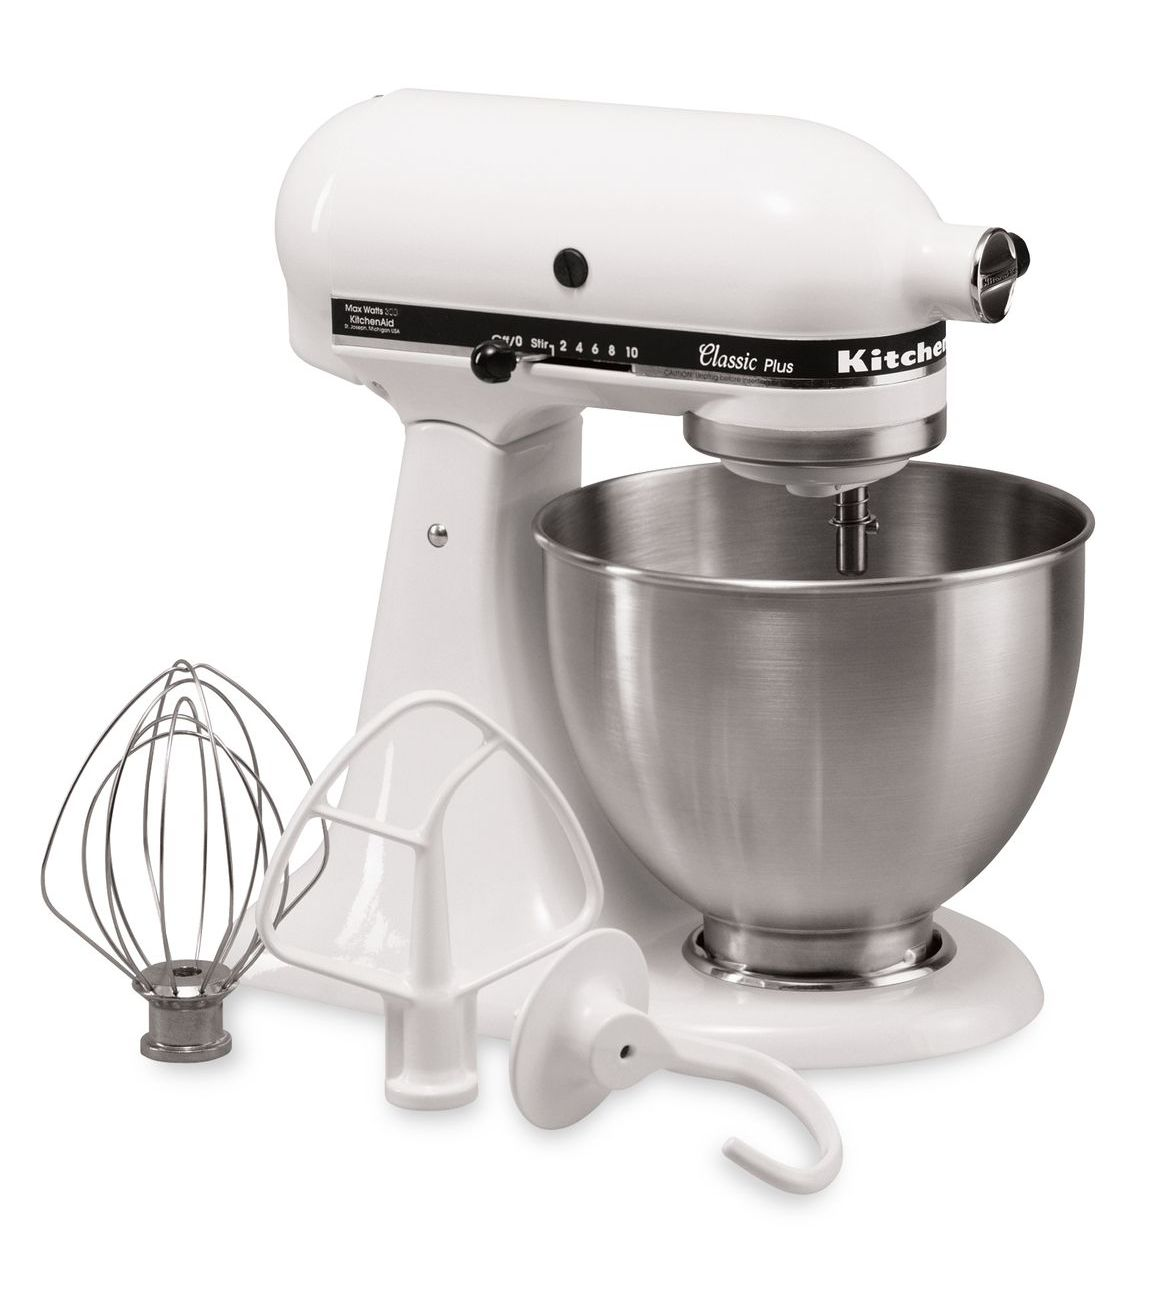 Kitchen aid mixer classic Photo - 1